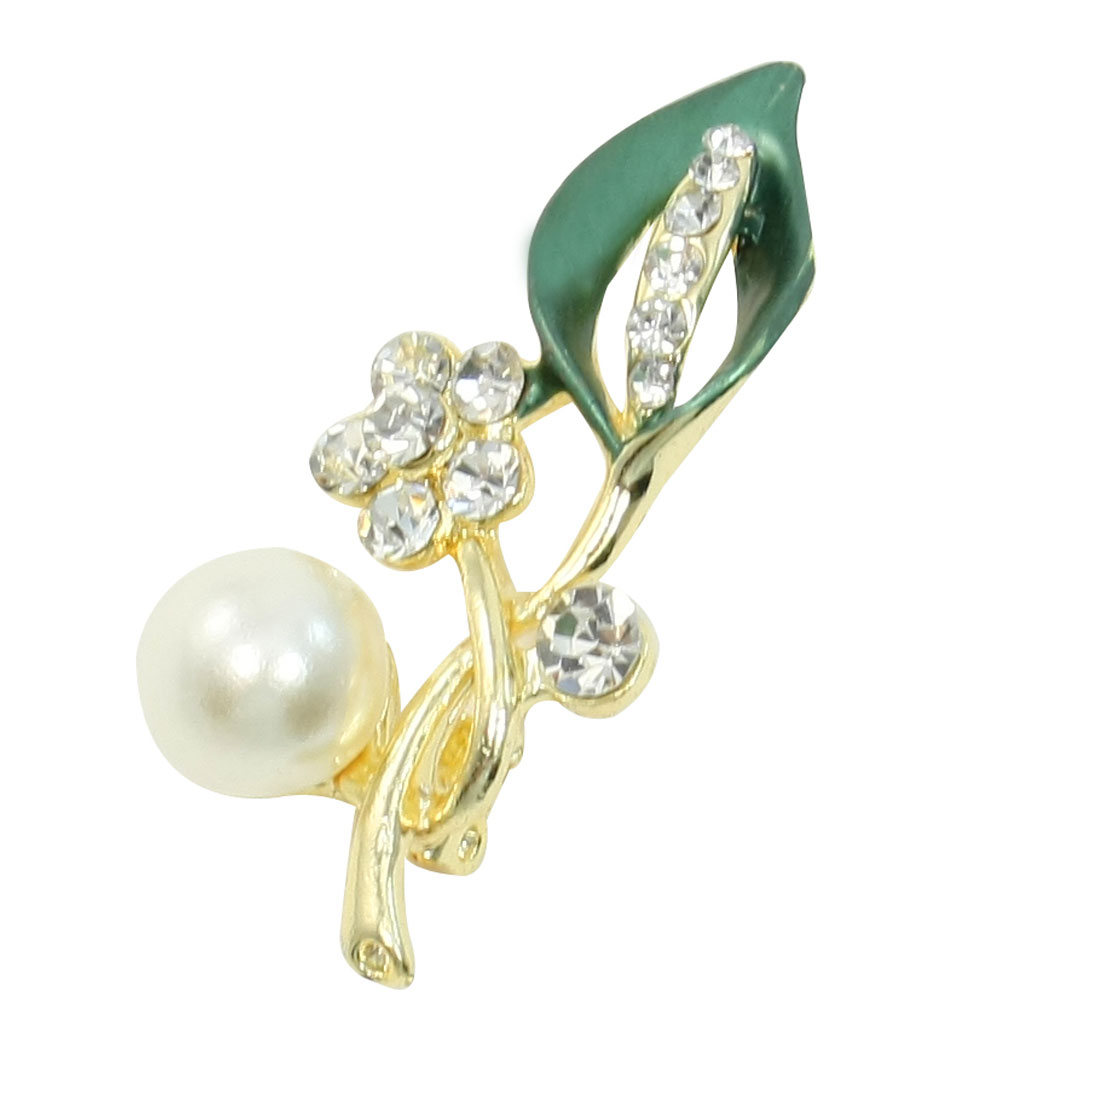 Rhinestone Accent Floral Leave Safety Pin Brooch Breastpin Green for Ladies